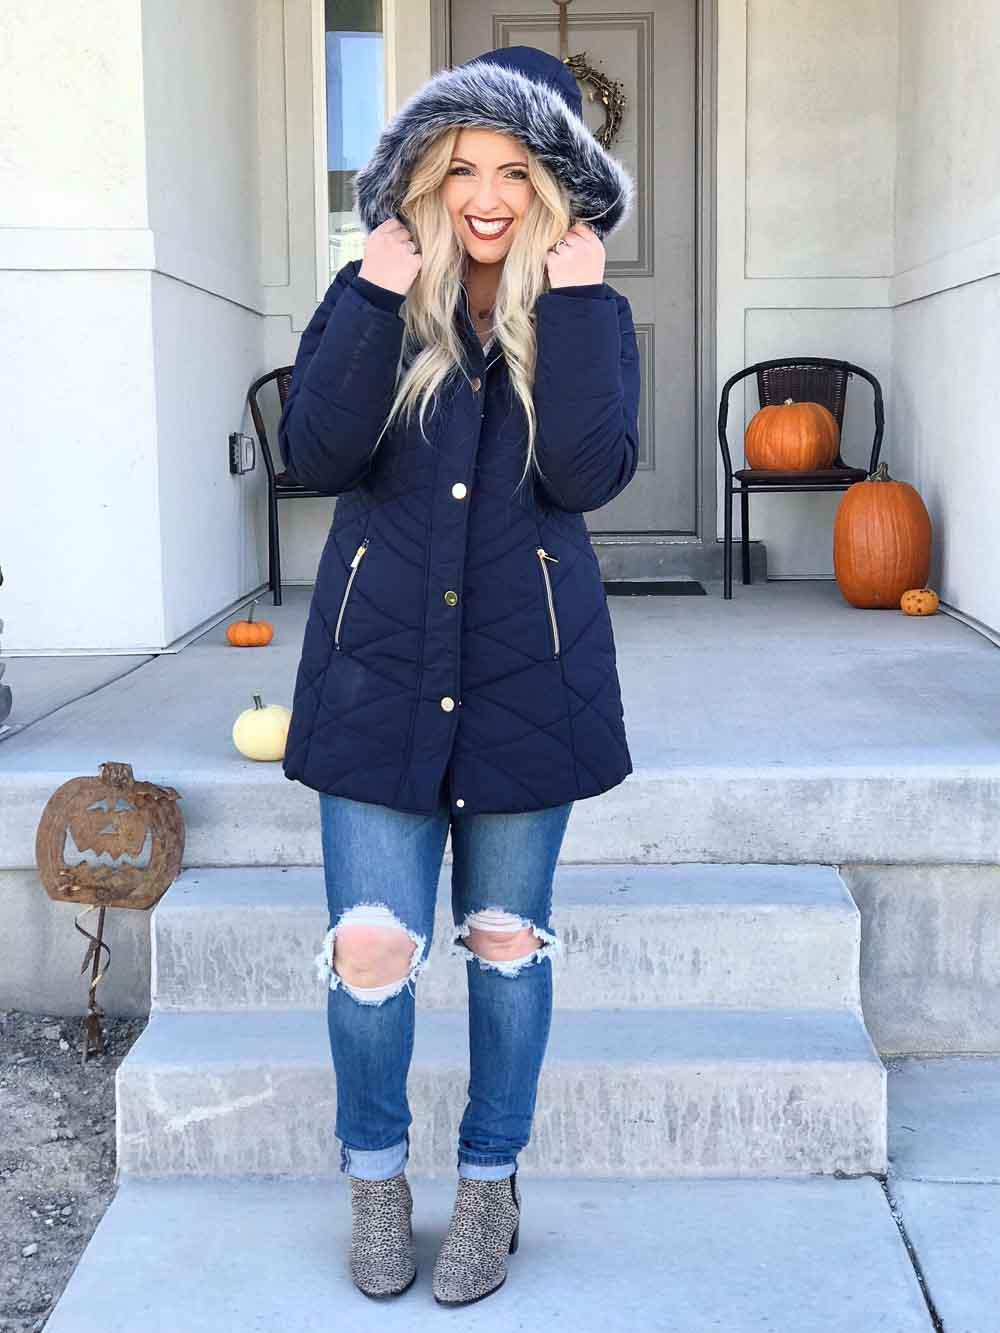 Are you sick of looking like a marshmallow in the winter? I'm here to give you my 3 best tips on finding cute, warm, and inexpensive winter coats! | whitjxoxo.com